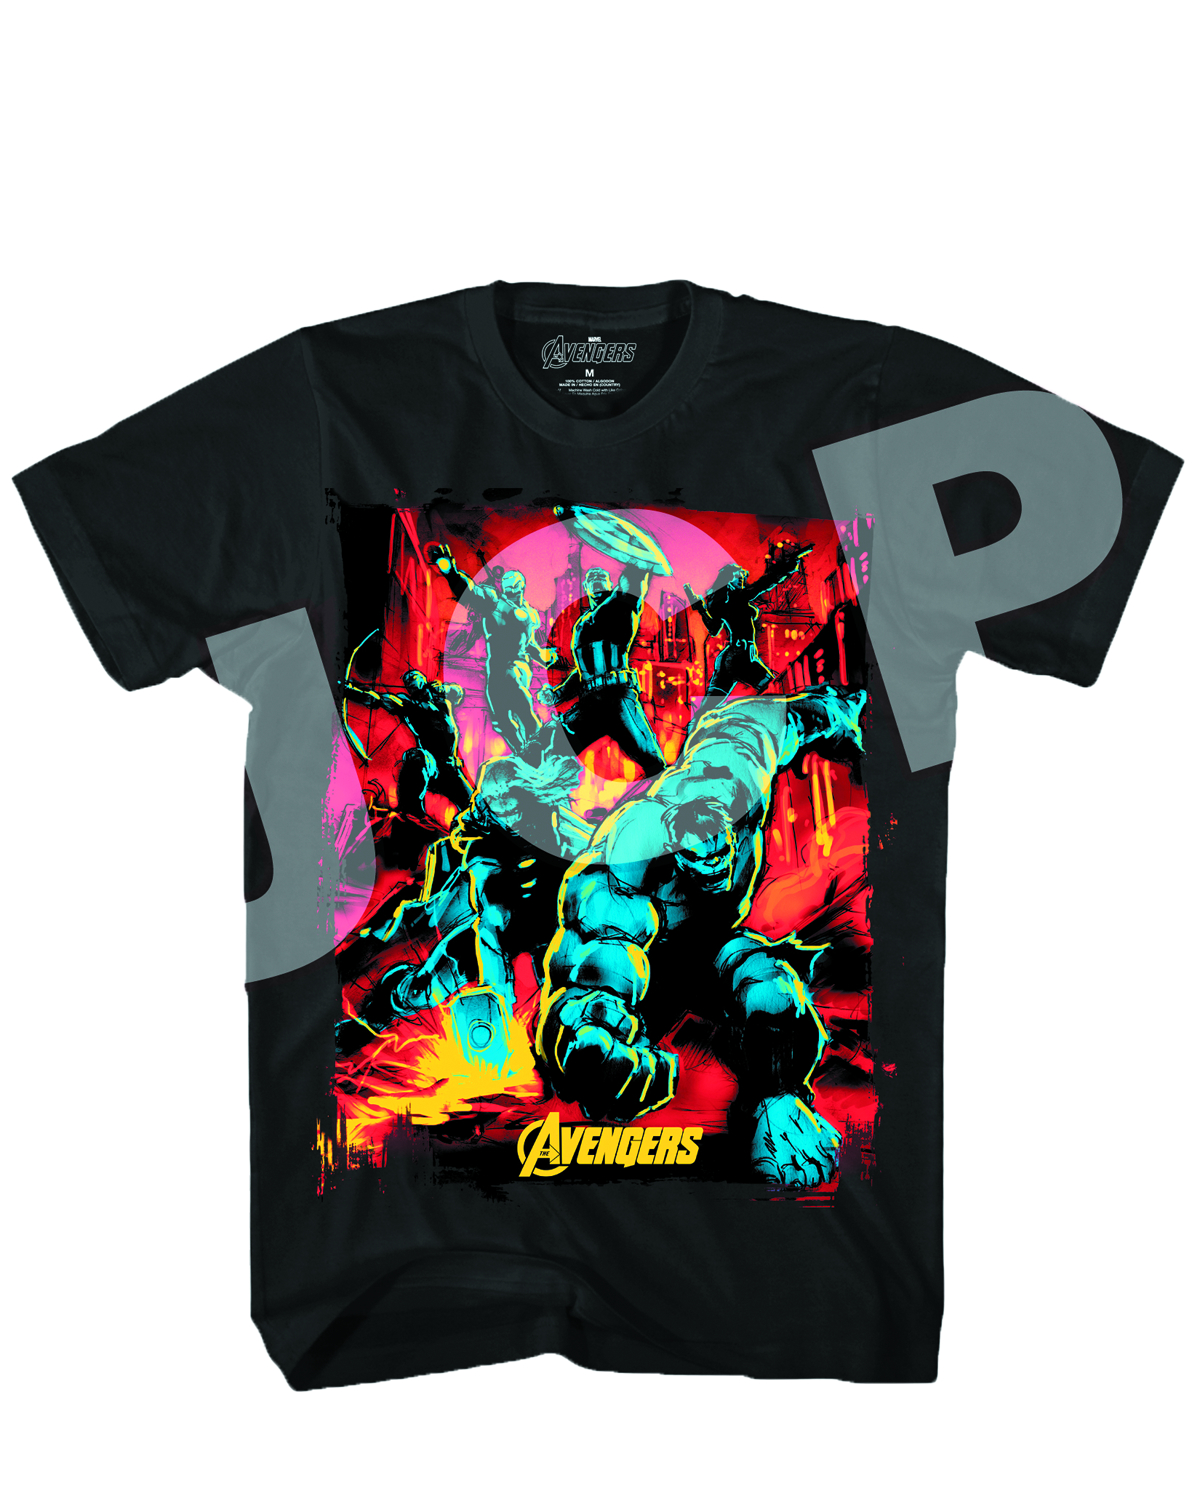 AVENGERS STREETS ON FIRE BLACK T/S XL